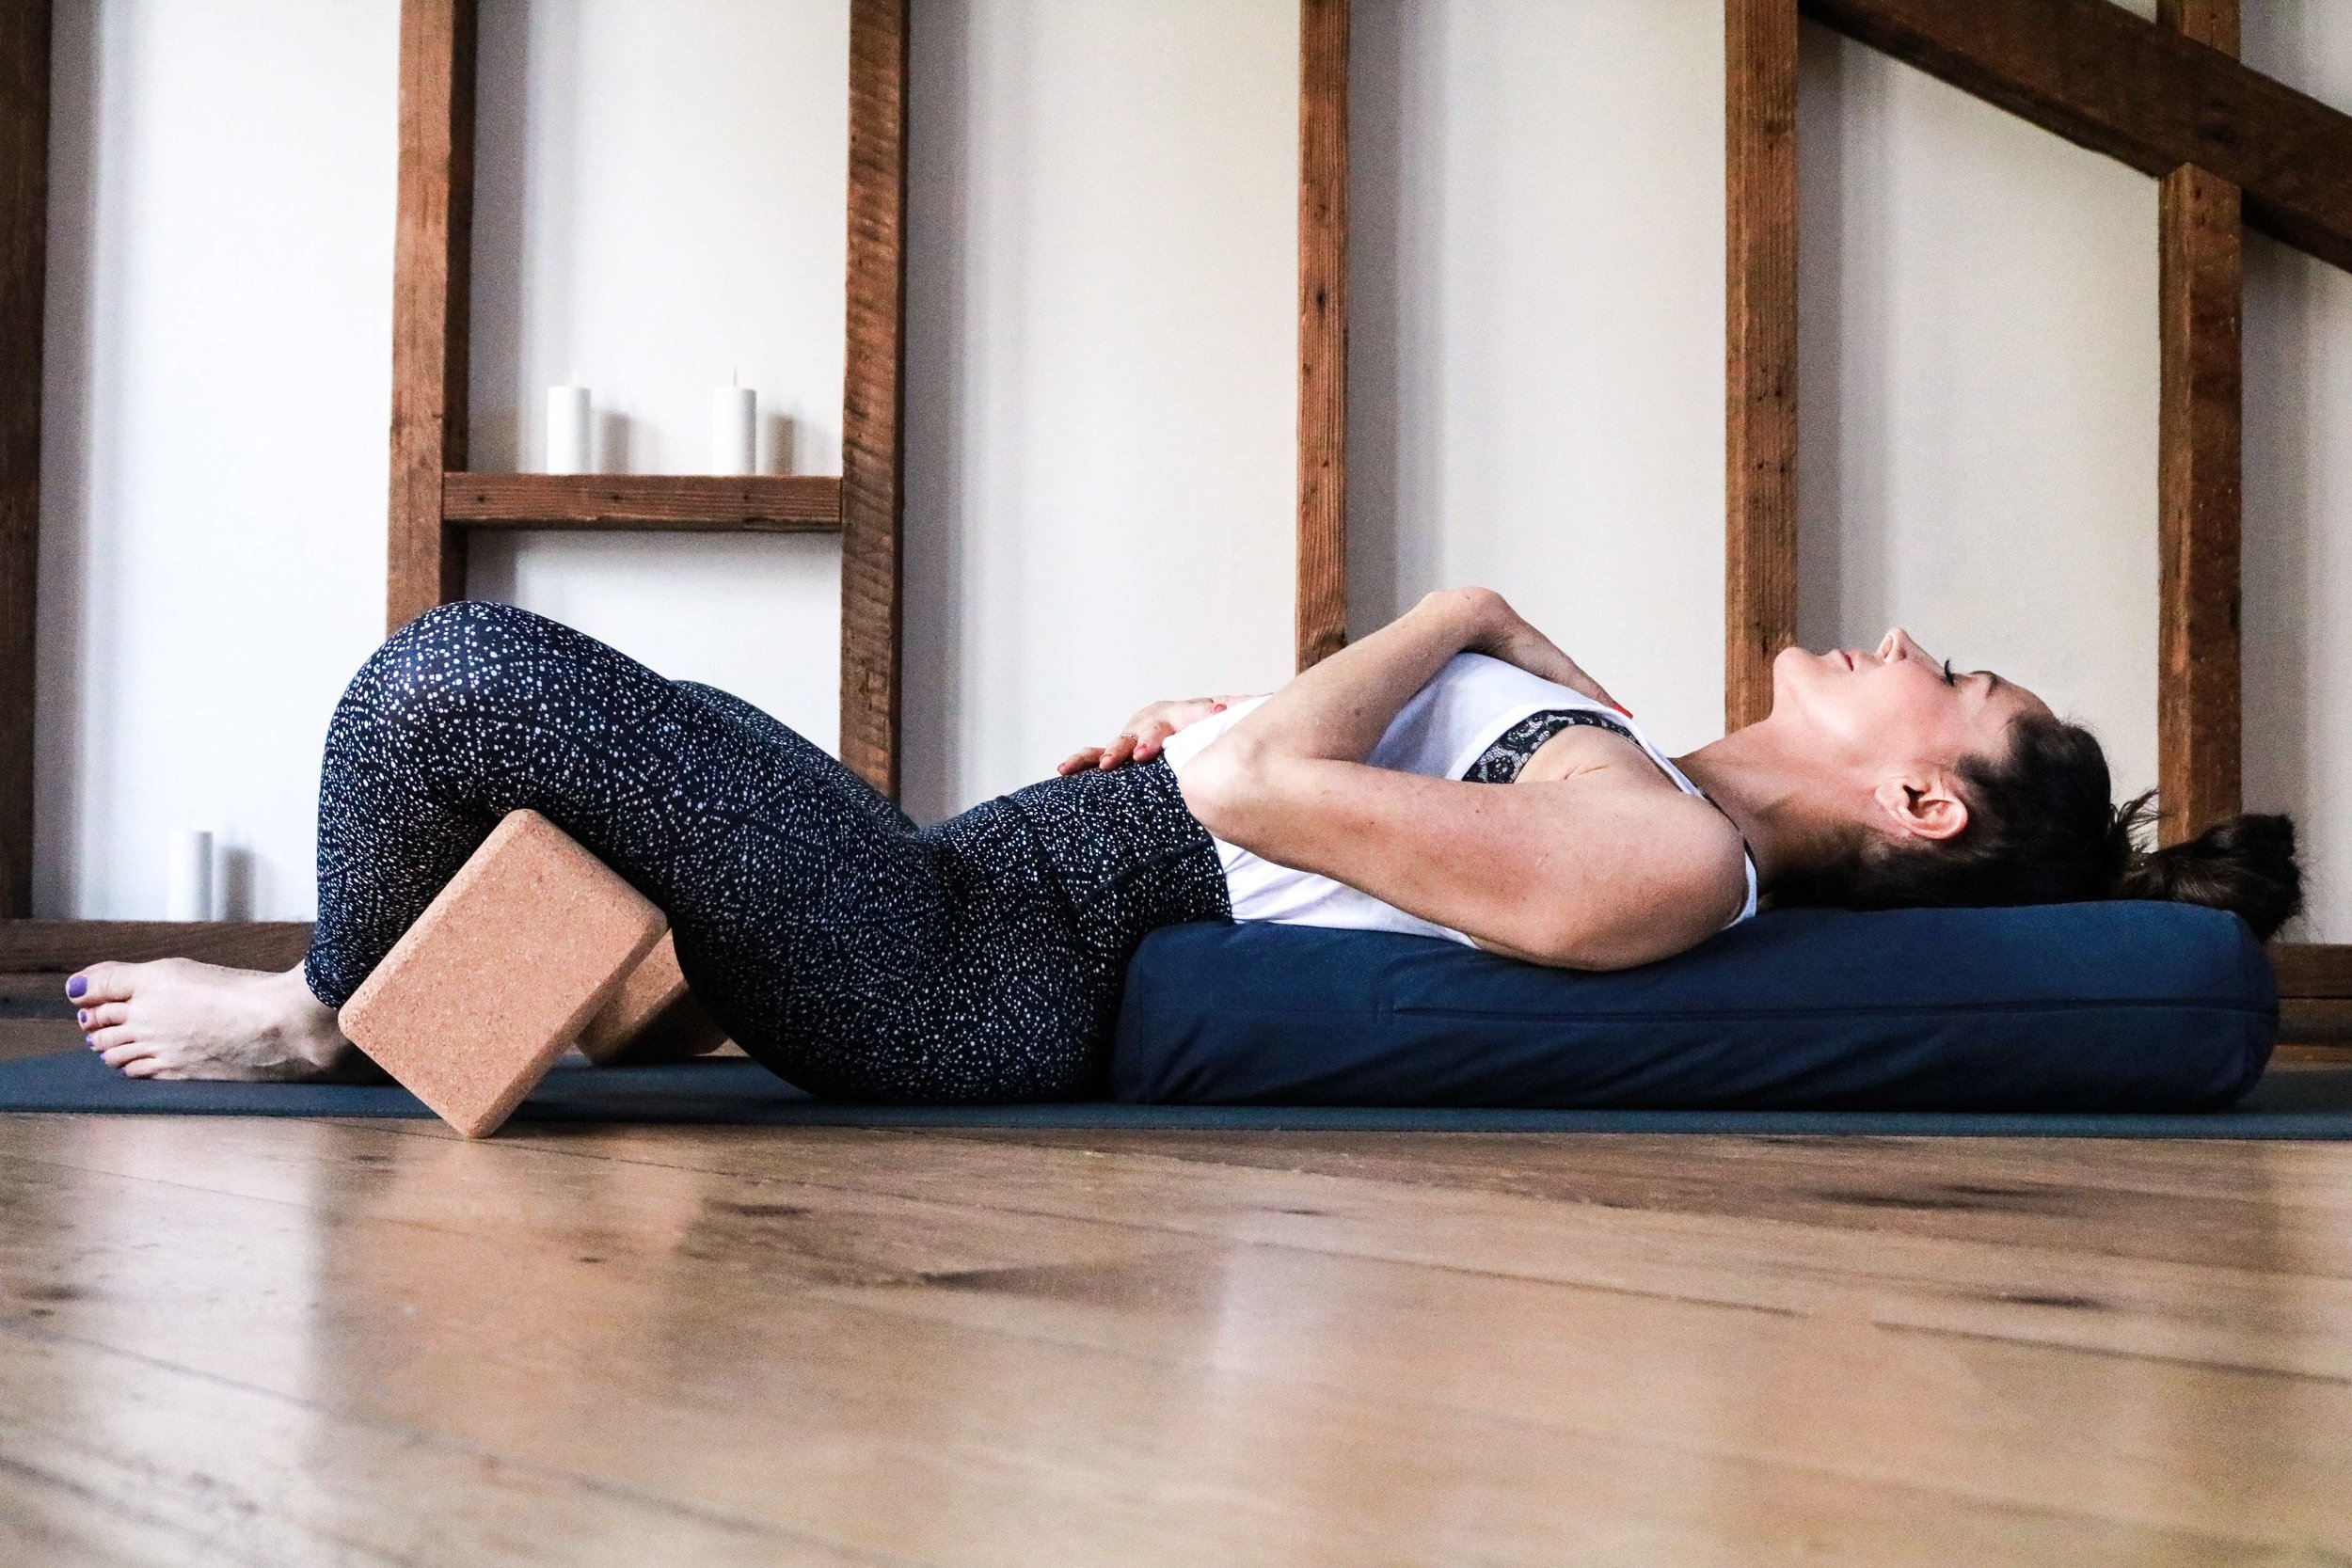 RECOVERY YOGA - Recovery Yoga sessions are tailored to help you increase flexibility, improve range of motion, enhance general mobility and used as a means of injury prevention for many athletes.